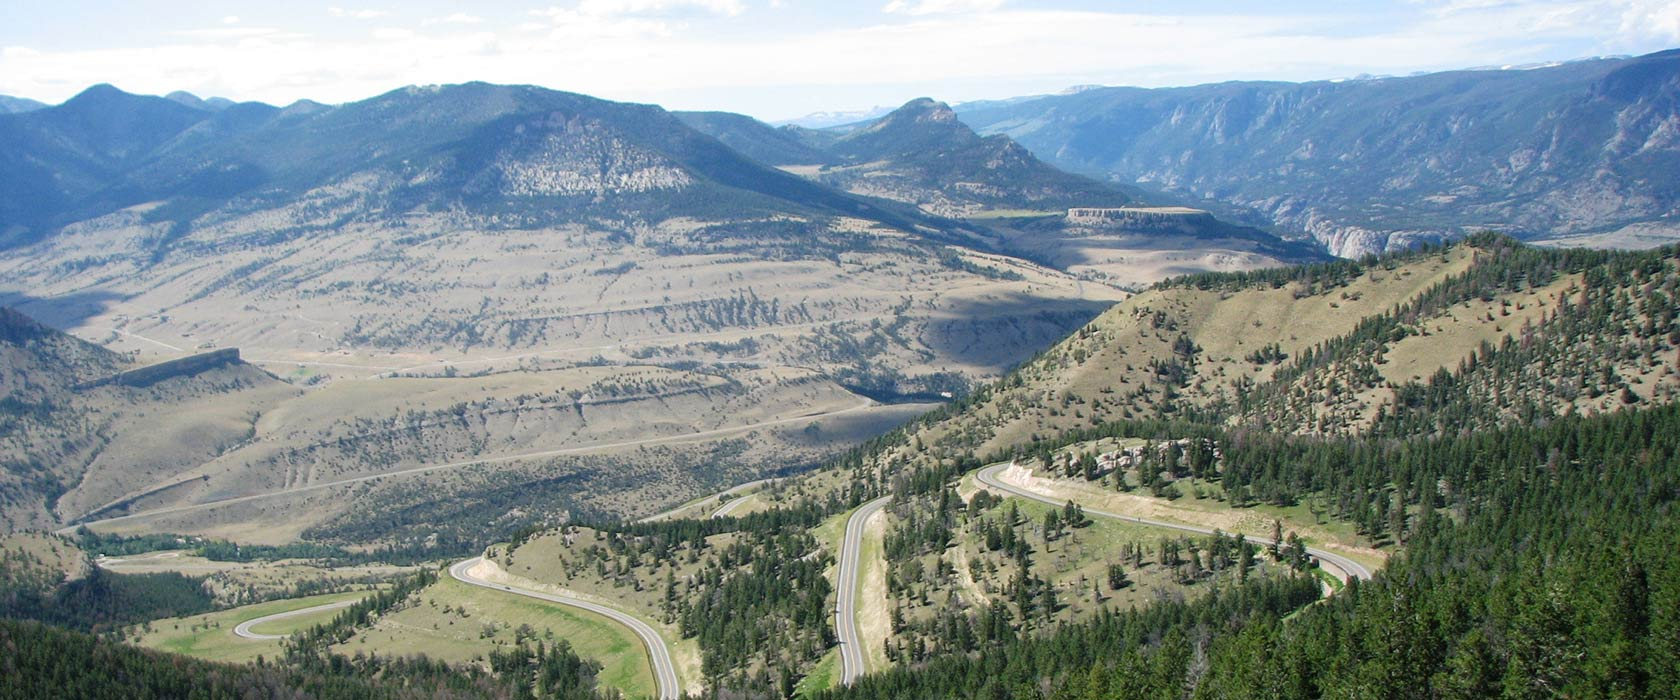 Featured Listings real estate, WY/Featured Listings real estate for sale